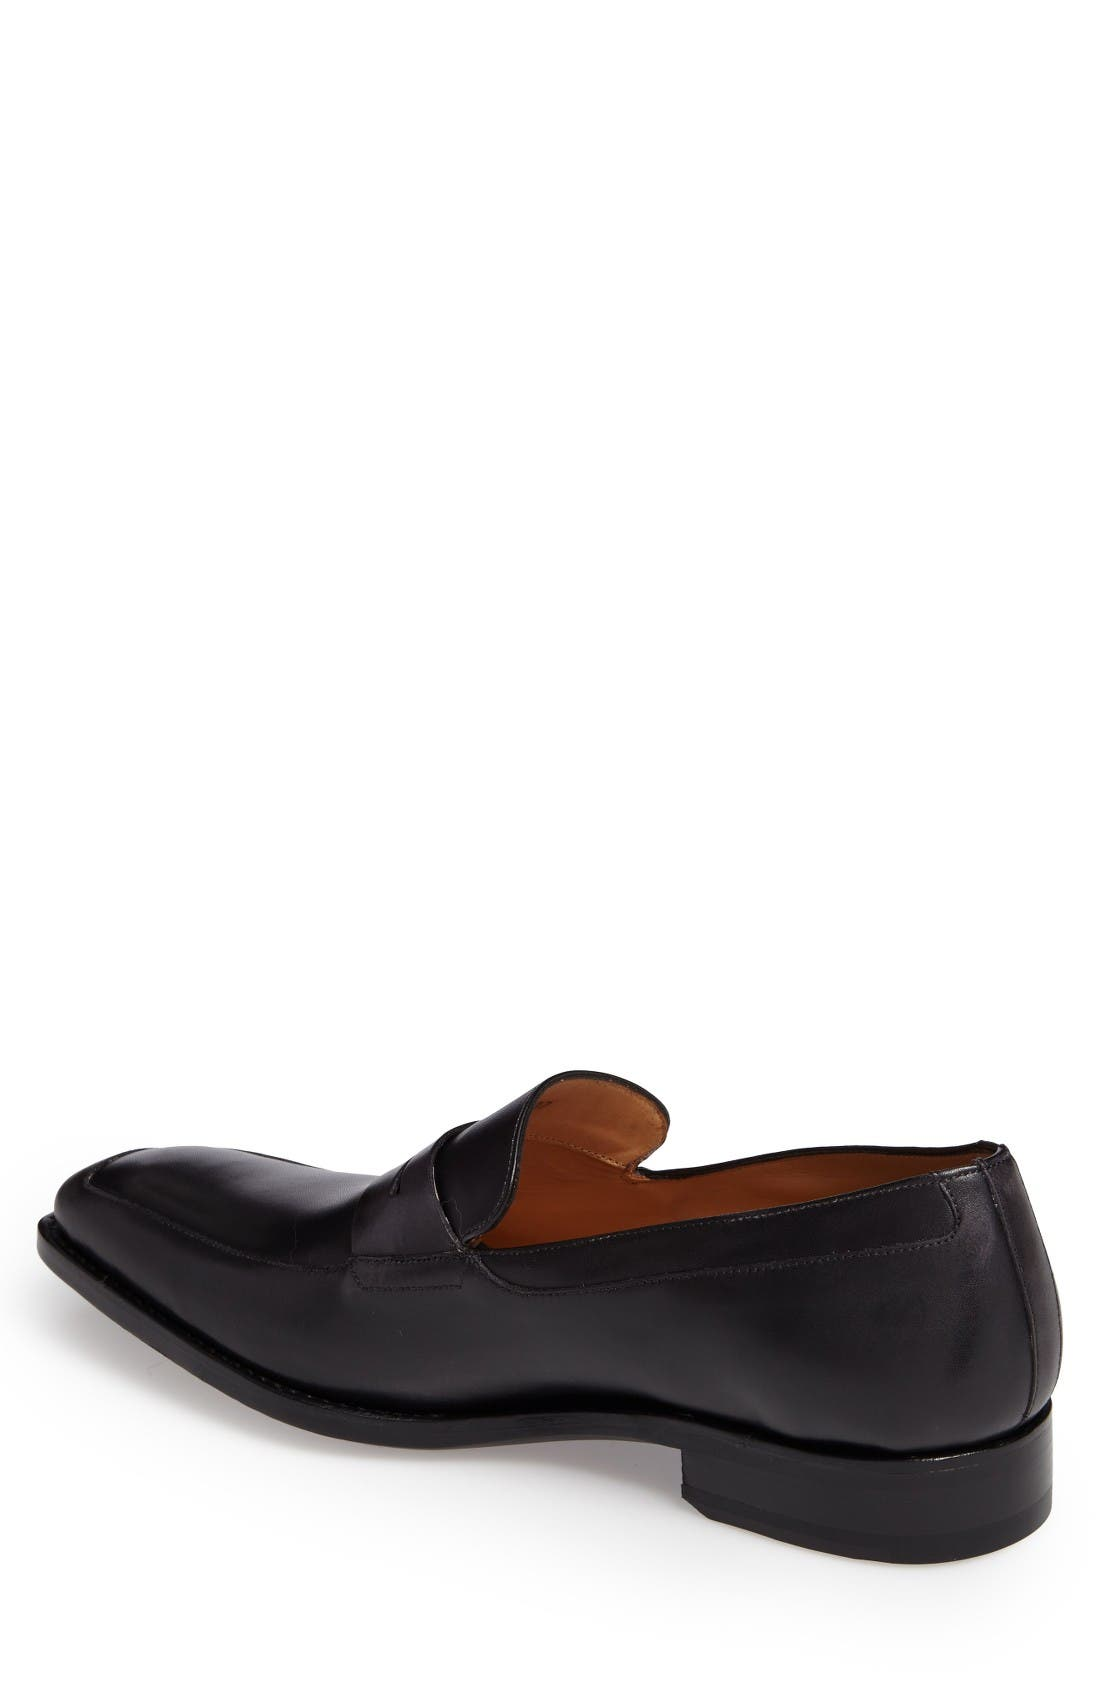 Alternate Image 2  - Impronta by Mezlan G117 Penny Loafer (Men)